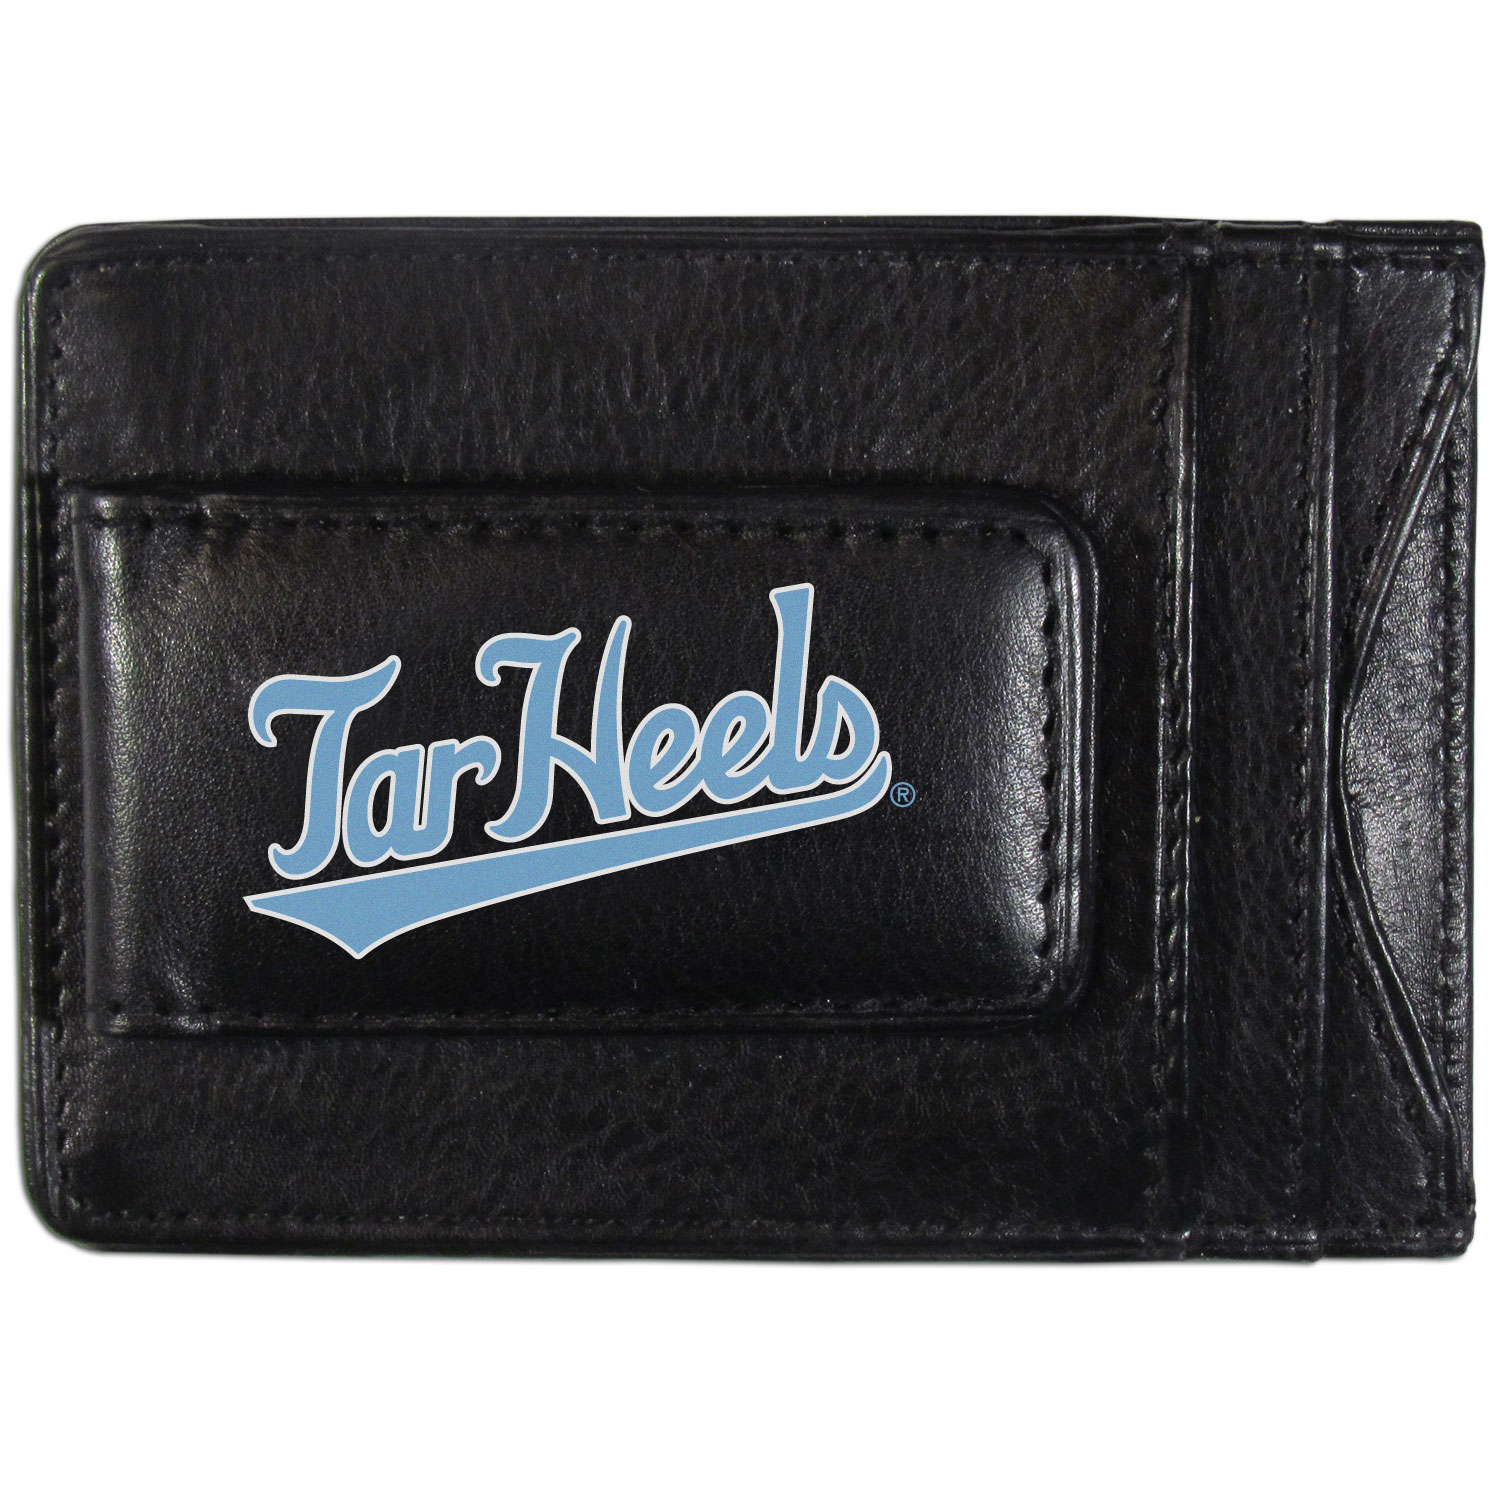 N. Carolina Tar Heels Logo Leather Cash and Cardholder - This super slim leather wallet lets you have all the benefits of a money clip while keeping the organization of a wallet. On one side of this front pocket wallet there is a strong, magnetic money clip to keep your cash easily accessible and the?N. Carolina Tar Heels team logo on the front. The versatile men's accessory is a perfect addition to your fan apparel.